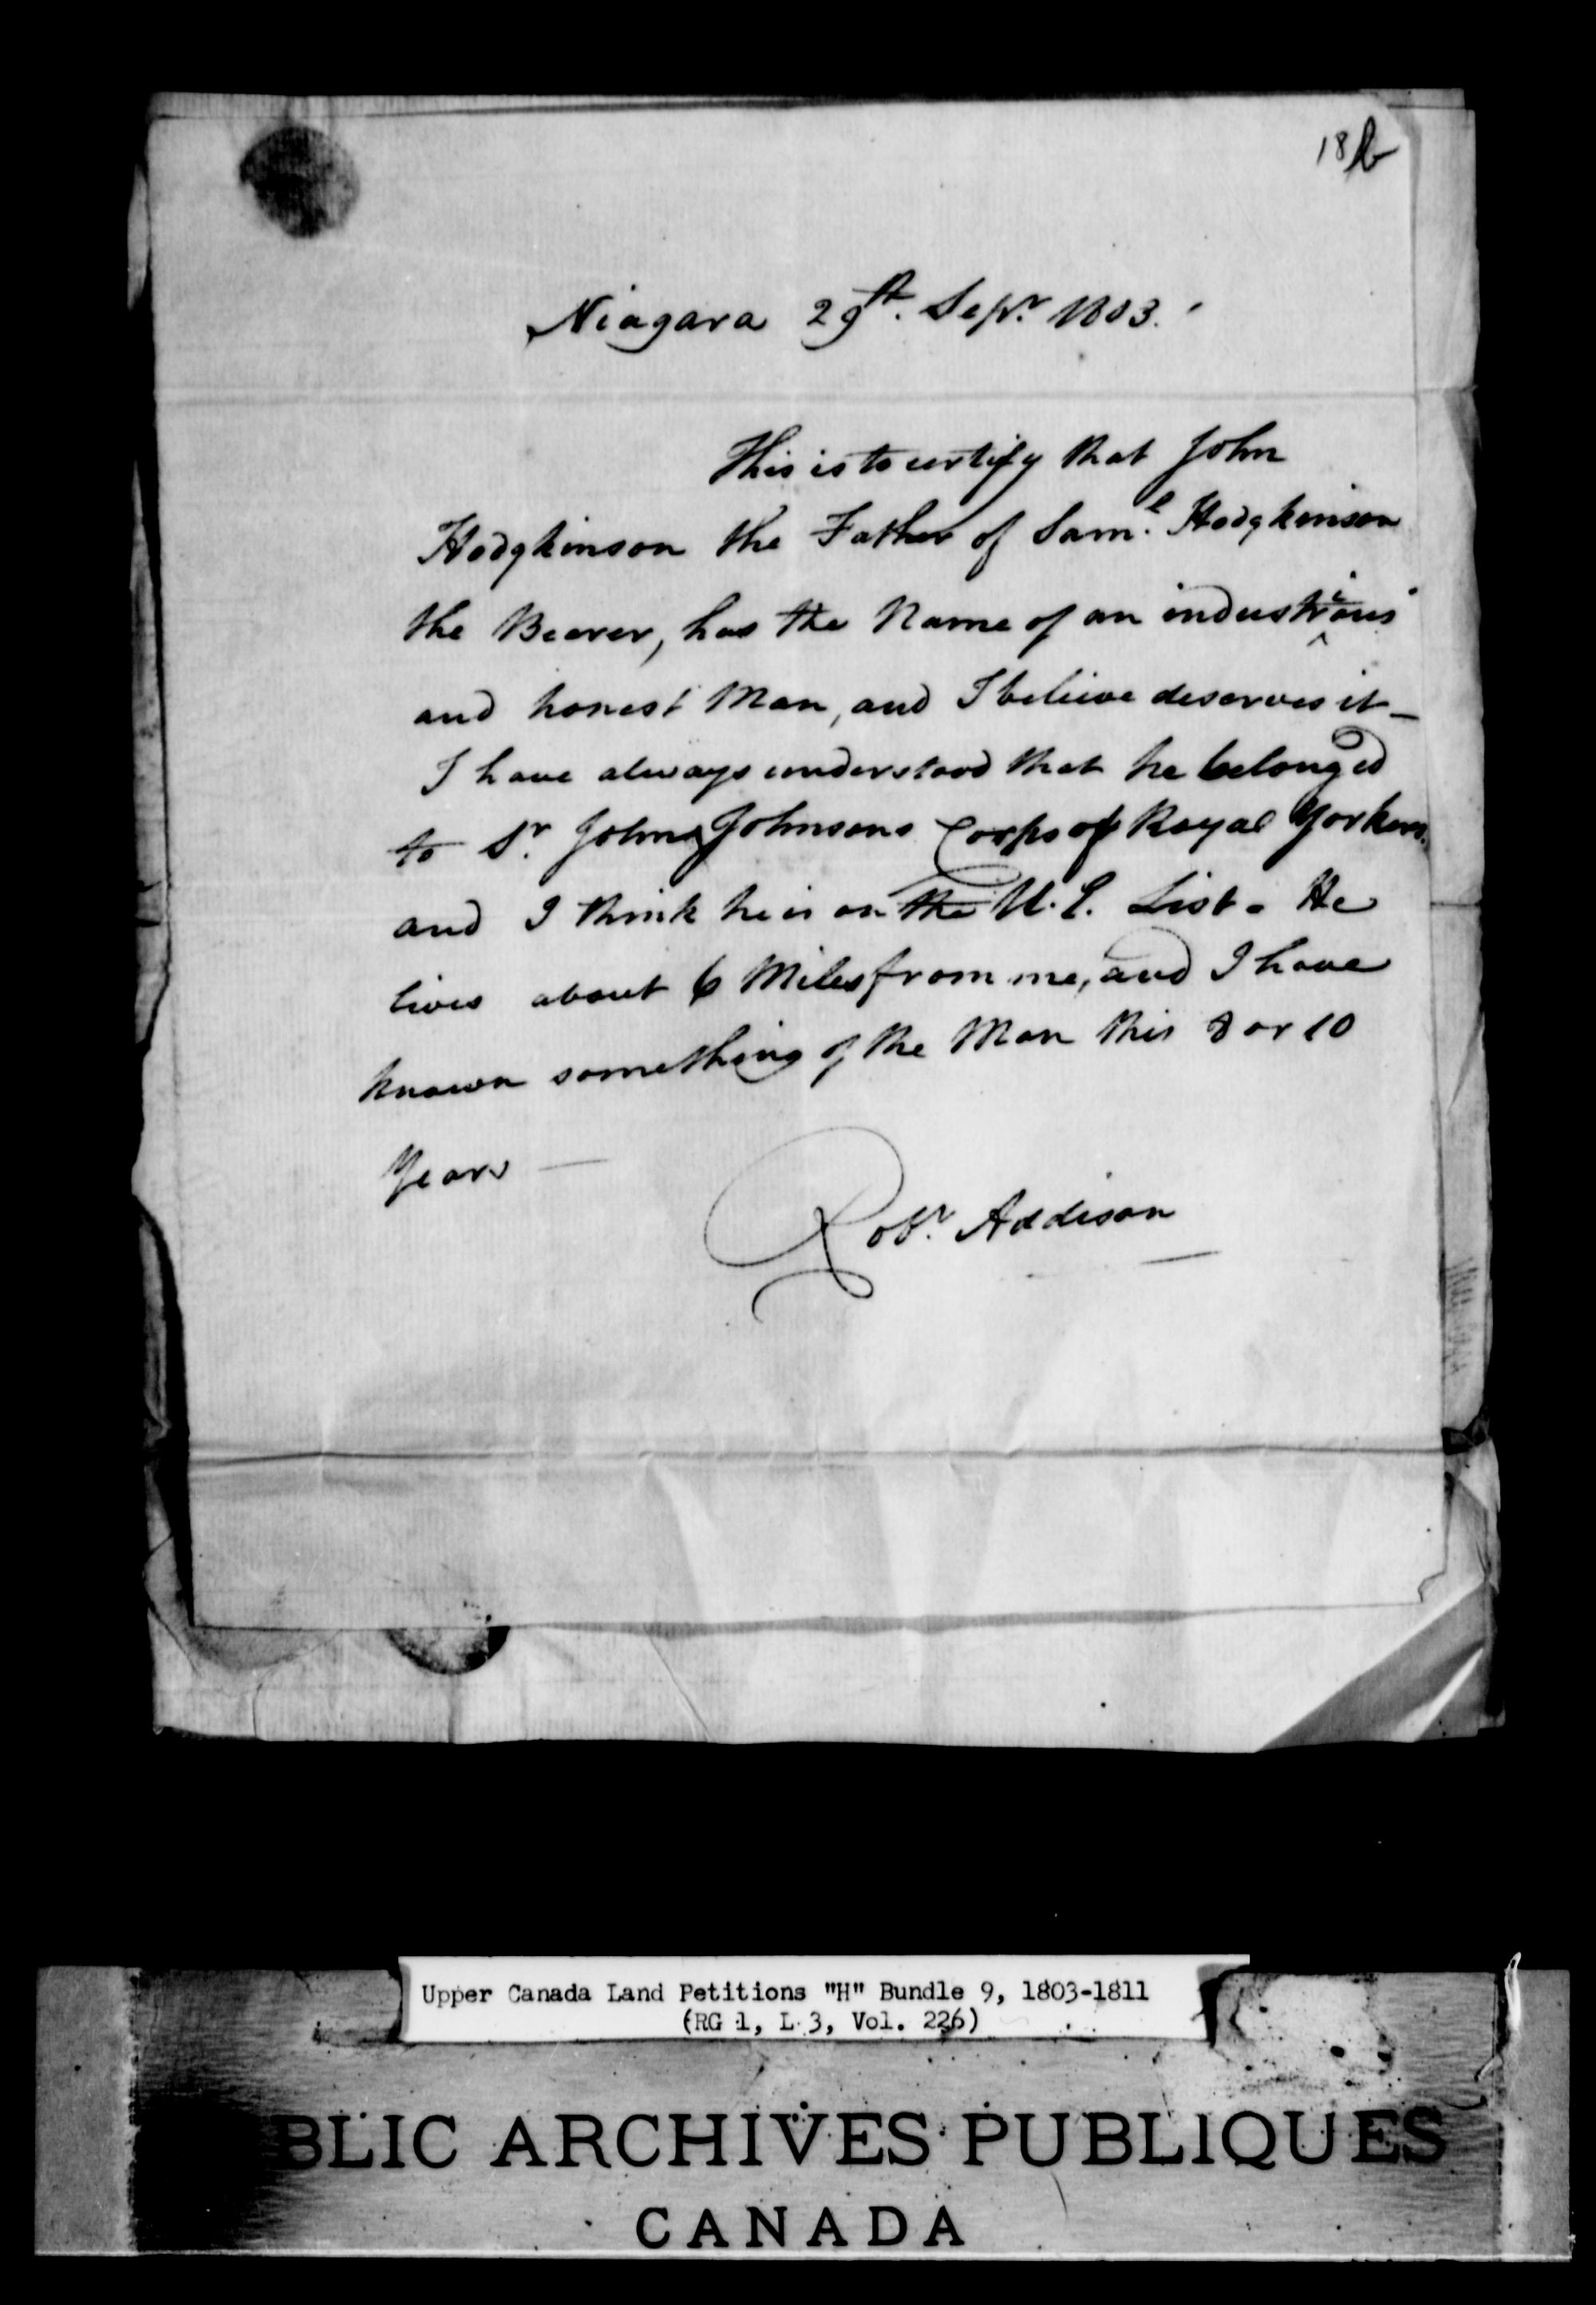 Title: Upper Canada Land Petitions (1763-1865) - Mikan Number: 205131 - Microform: c-2046